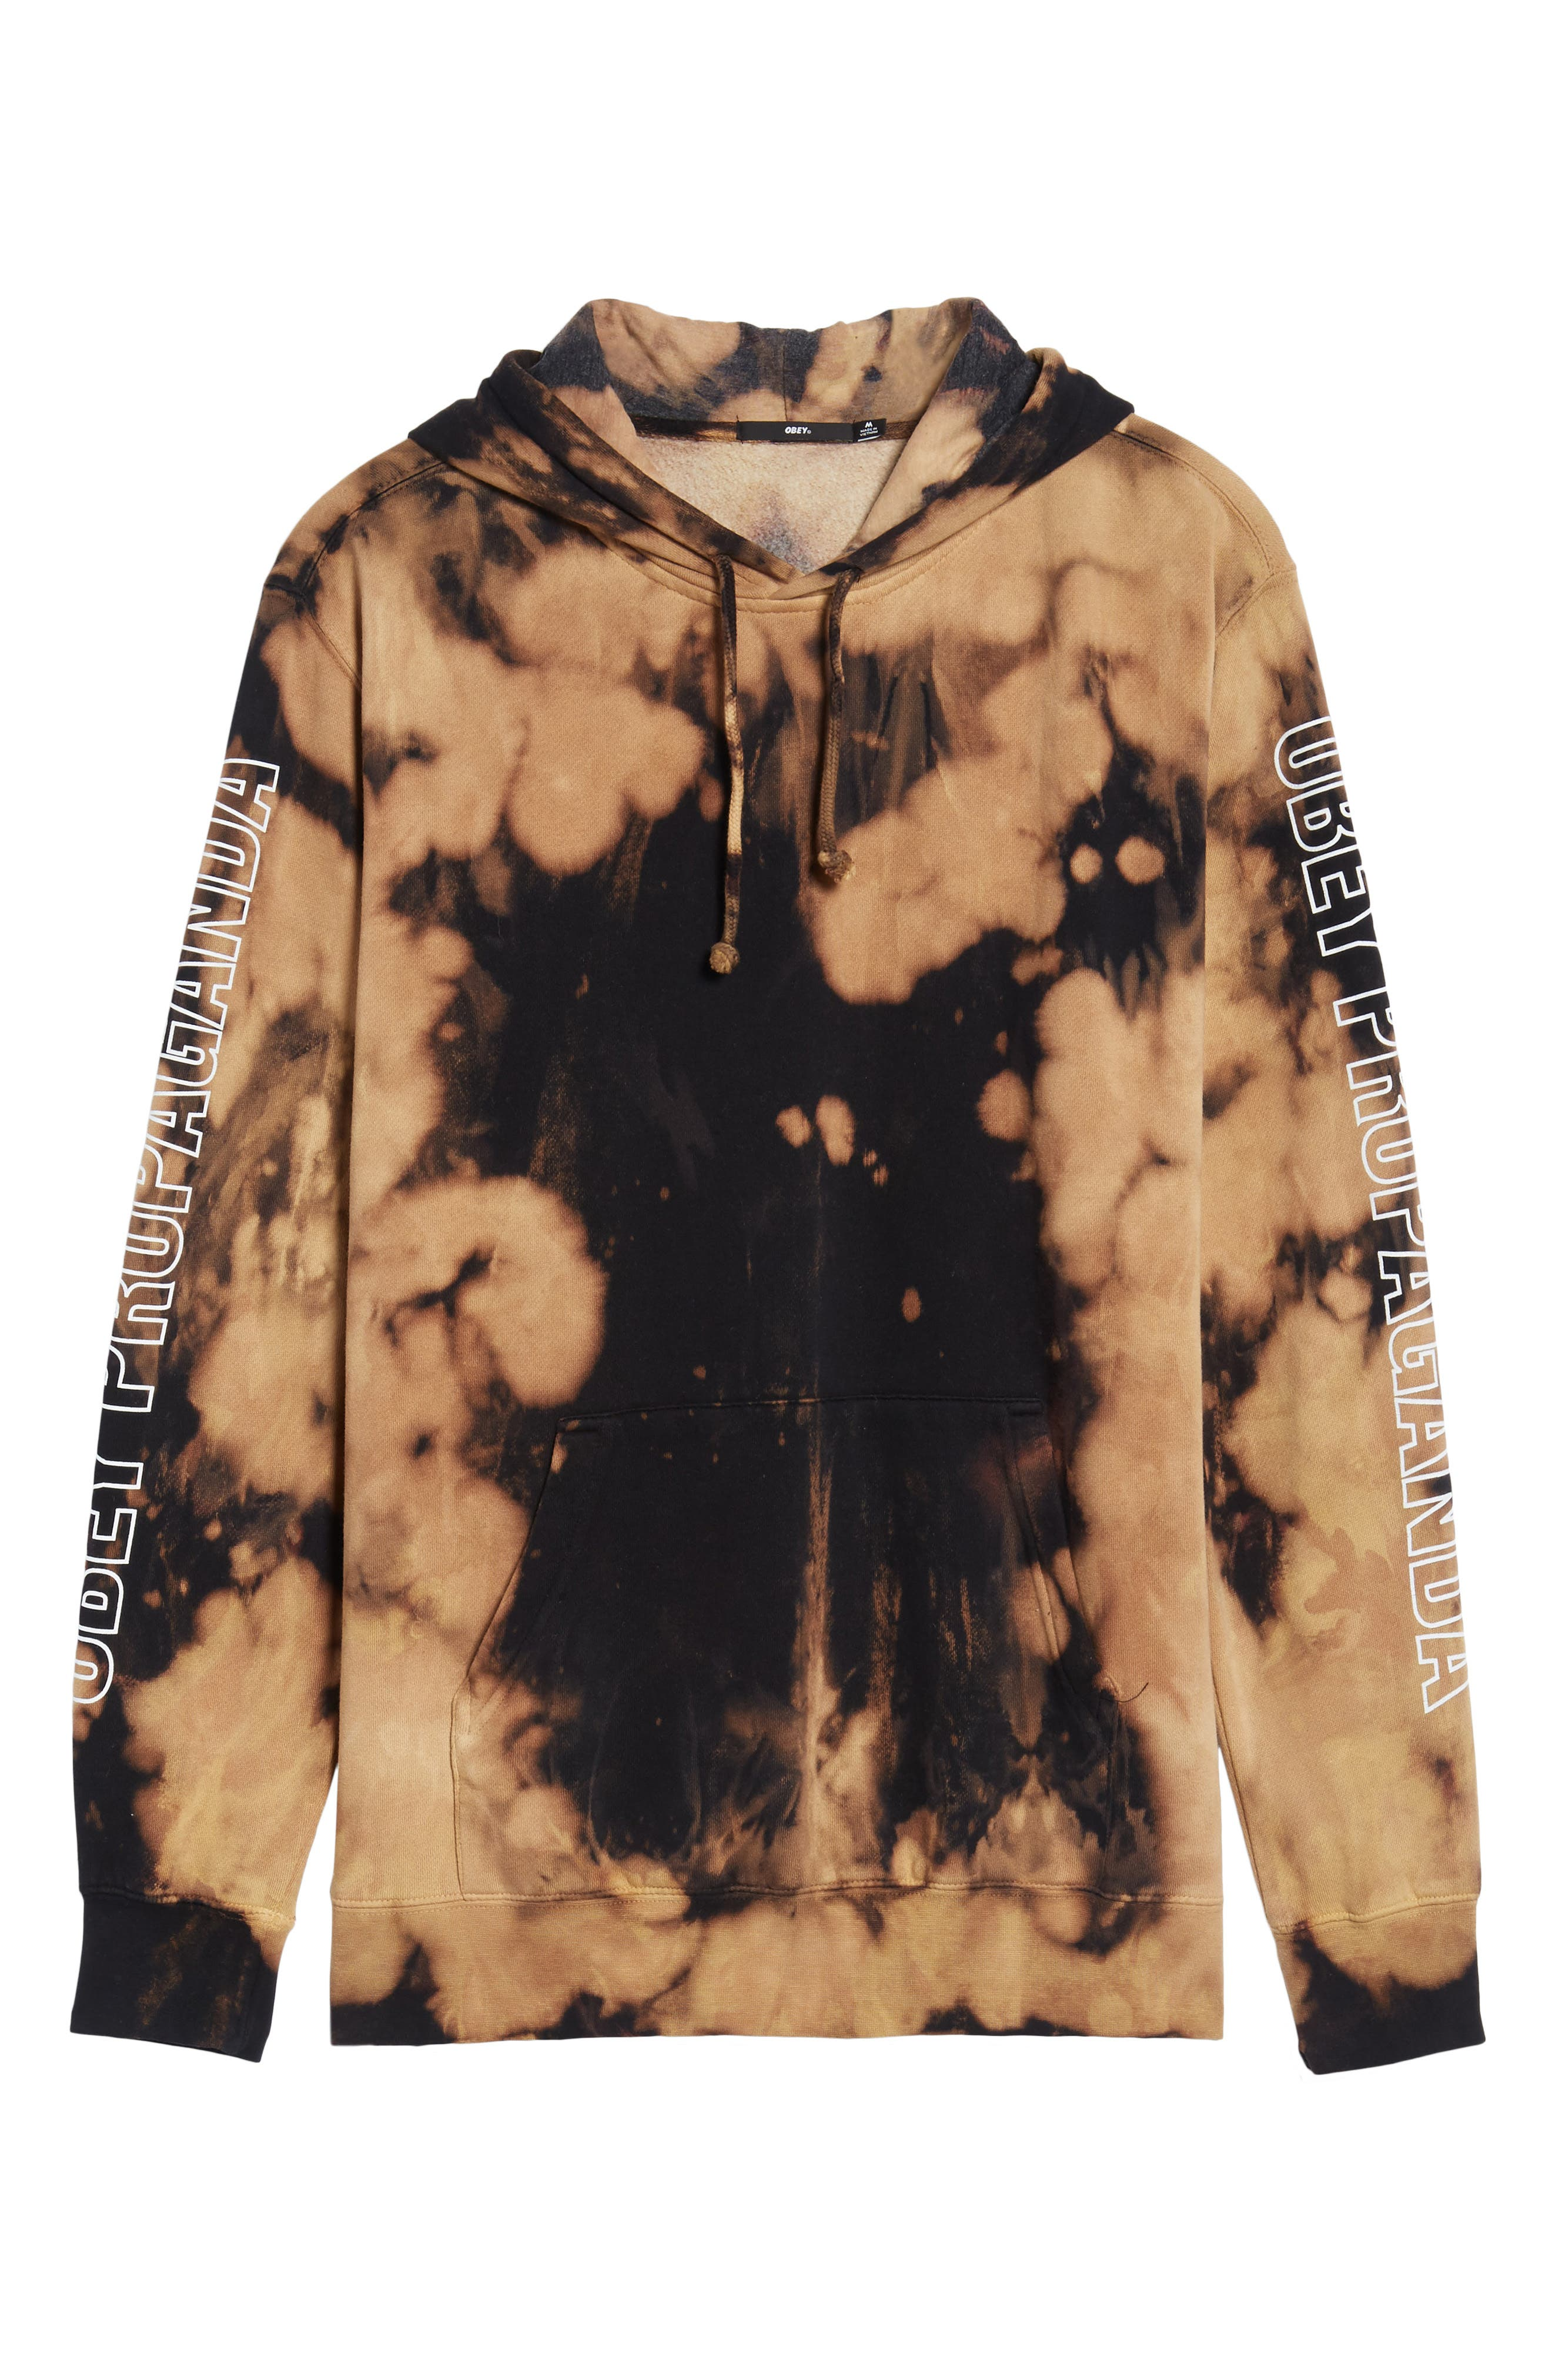 Rough Draft Tie Dye Fleece Hoodie,                             Alternate thumbnail 6, color,                             001